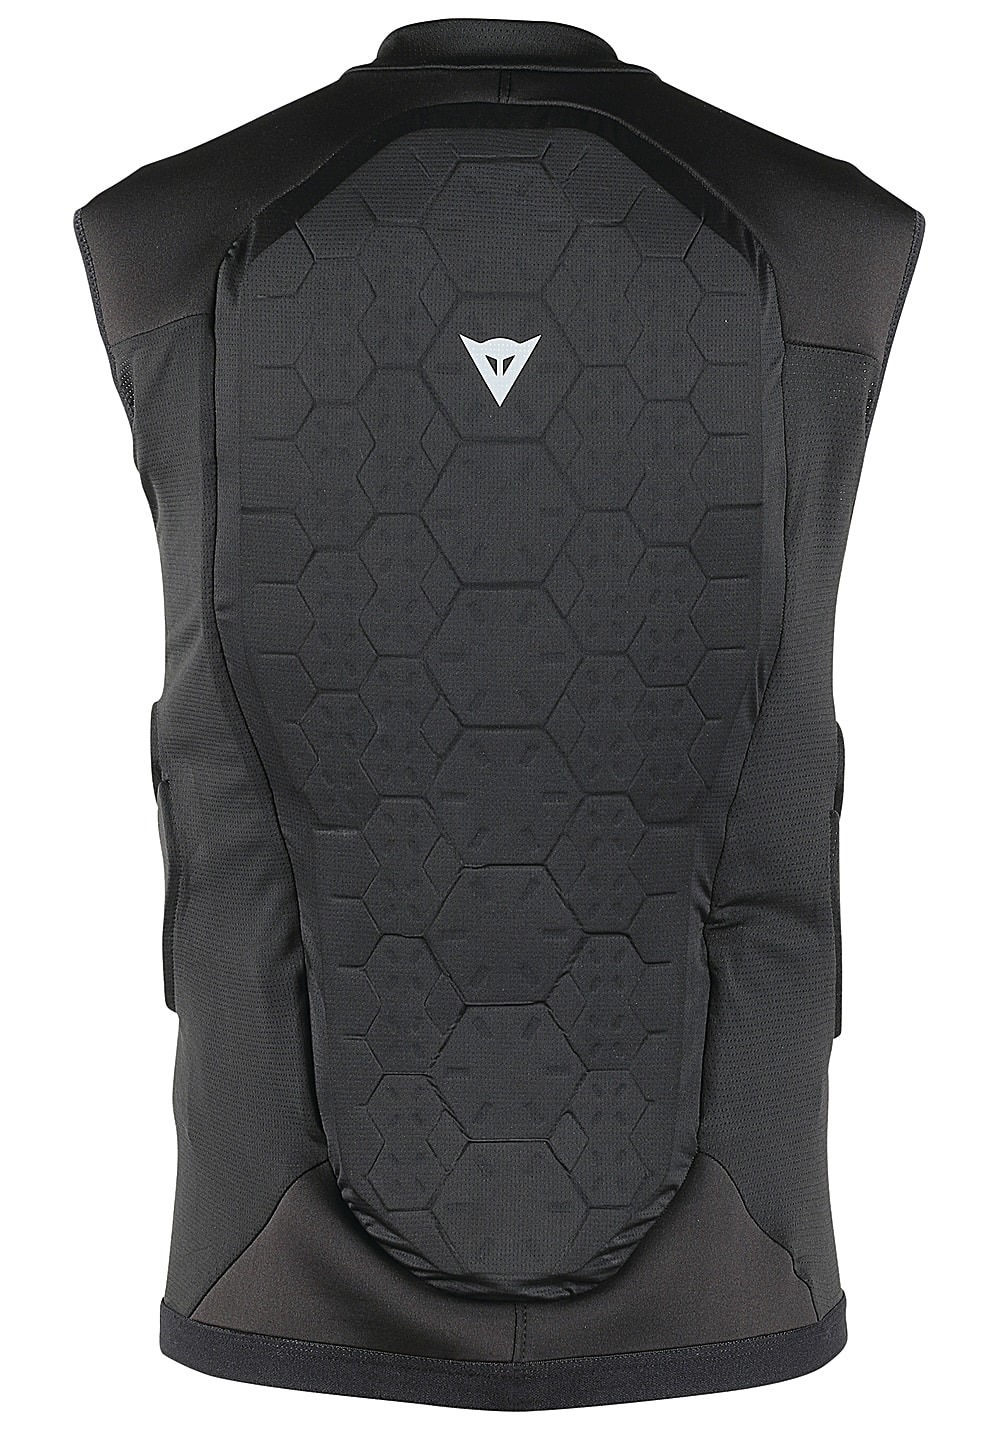 dainese flexagon waistcoat r ckenprotektor f r damen. Black Bedroom Furniture Sets. Home Design Ideas